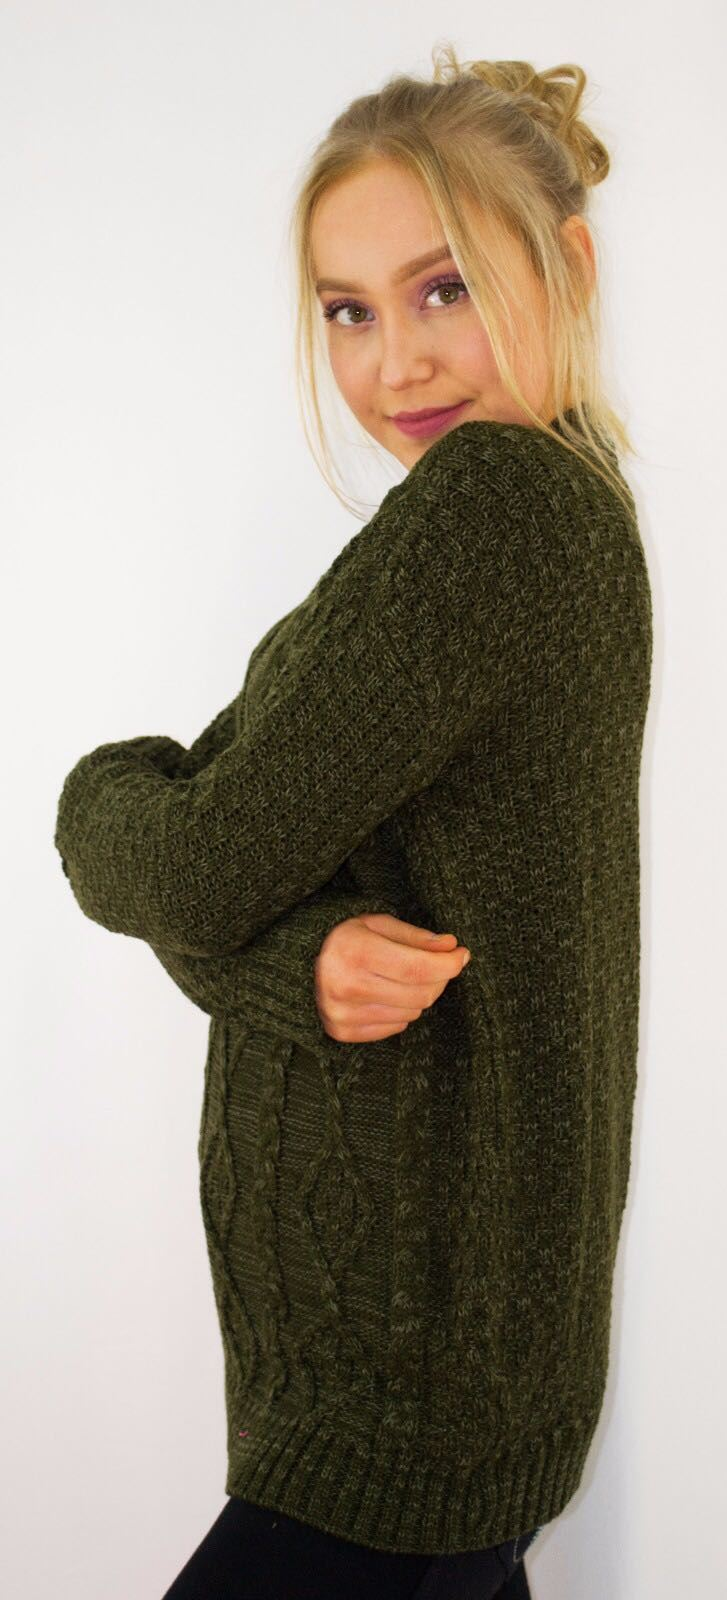 New-Ladies-Long-Manche-Chunky-Cable-Knitted-Jumper-crew-neck-hiver-Sweater-Top miniature 23